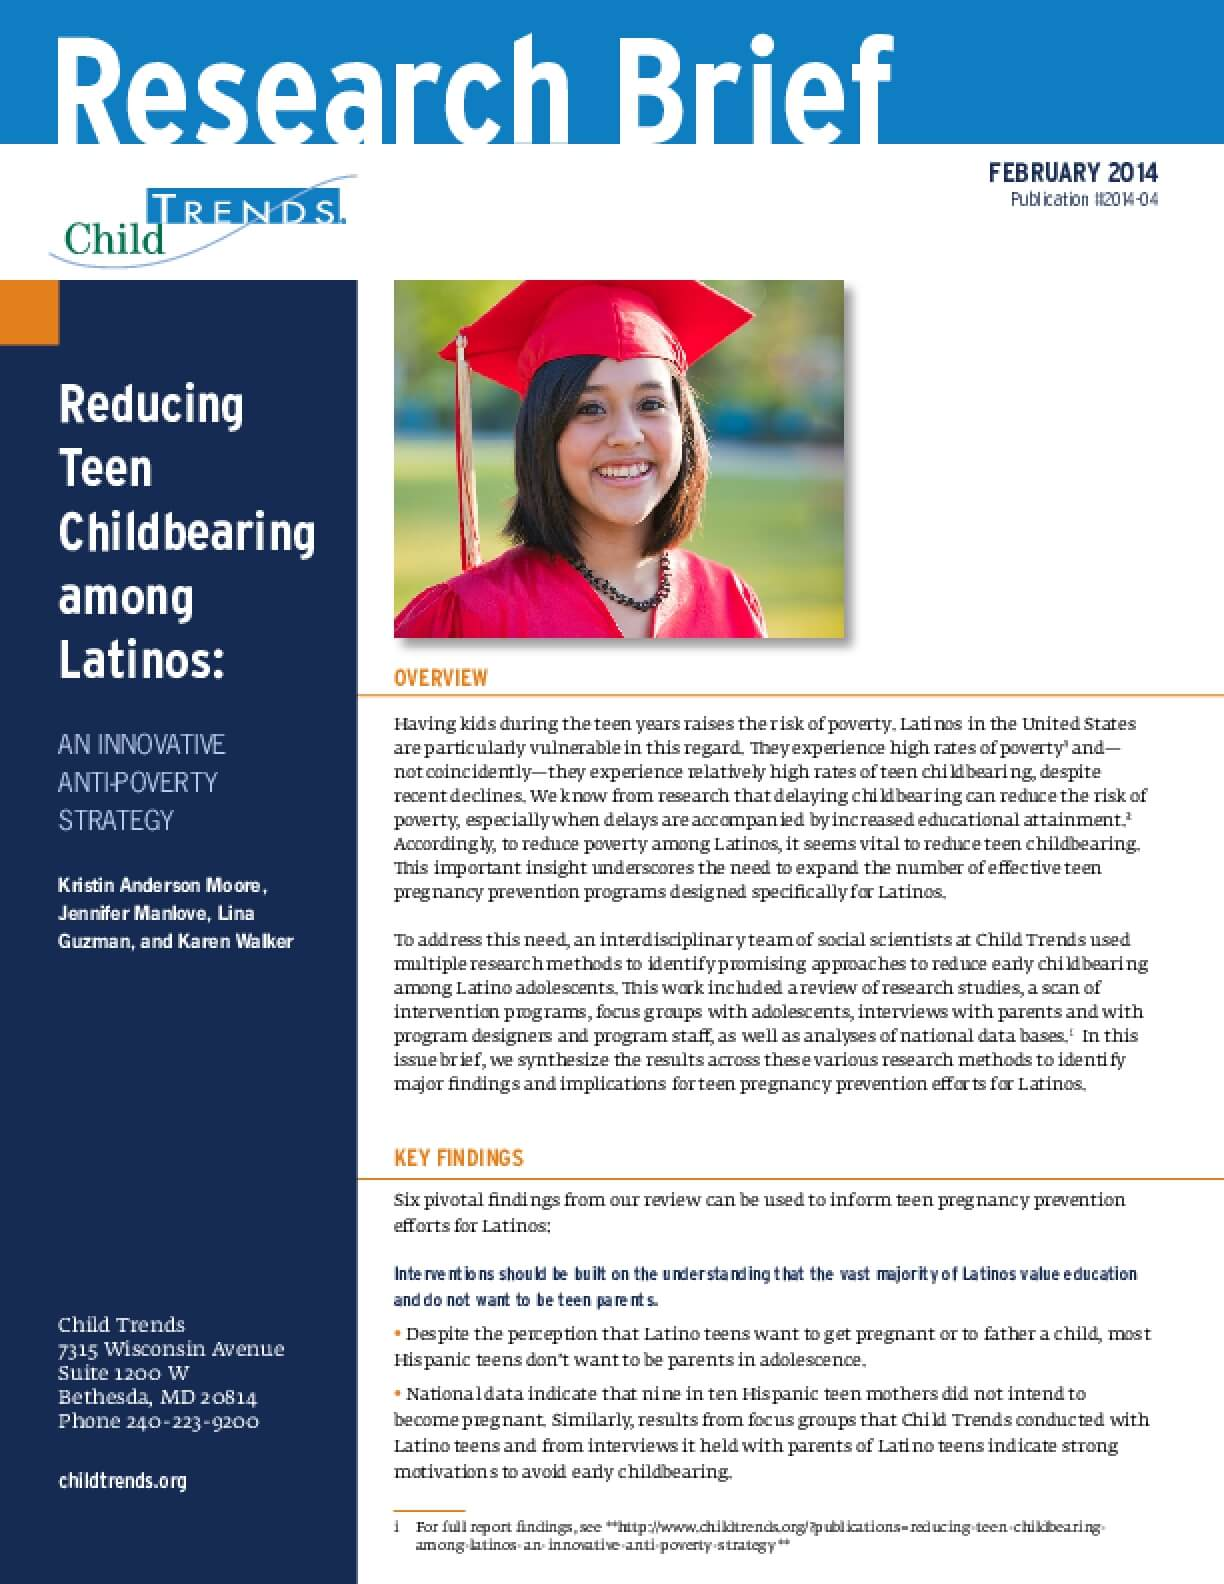 Reducing Teen Childbearing Among Latinos: An Innovative Anti-Poverty Strategy